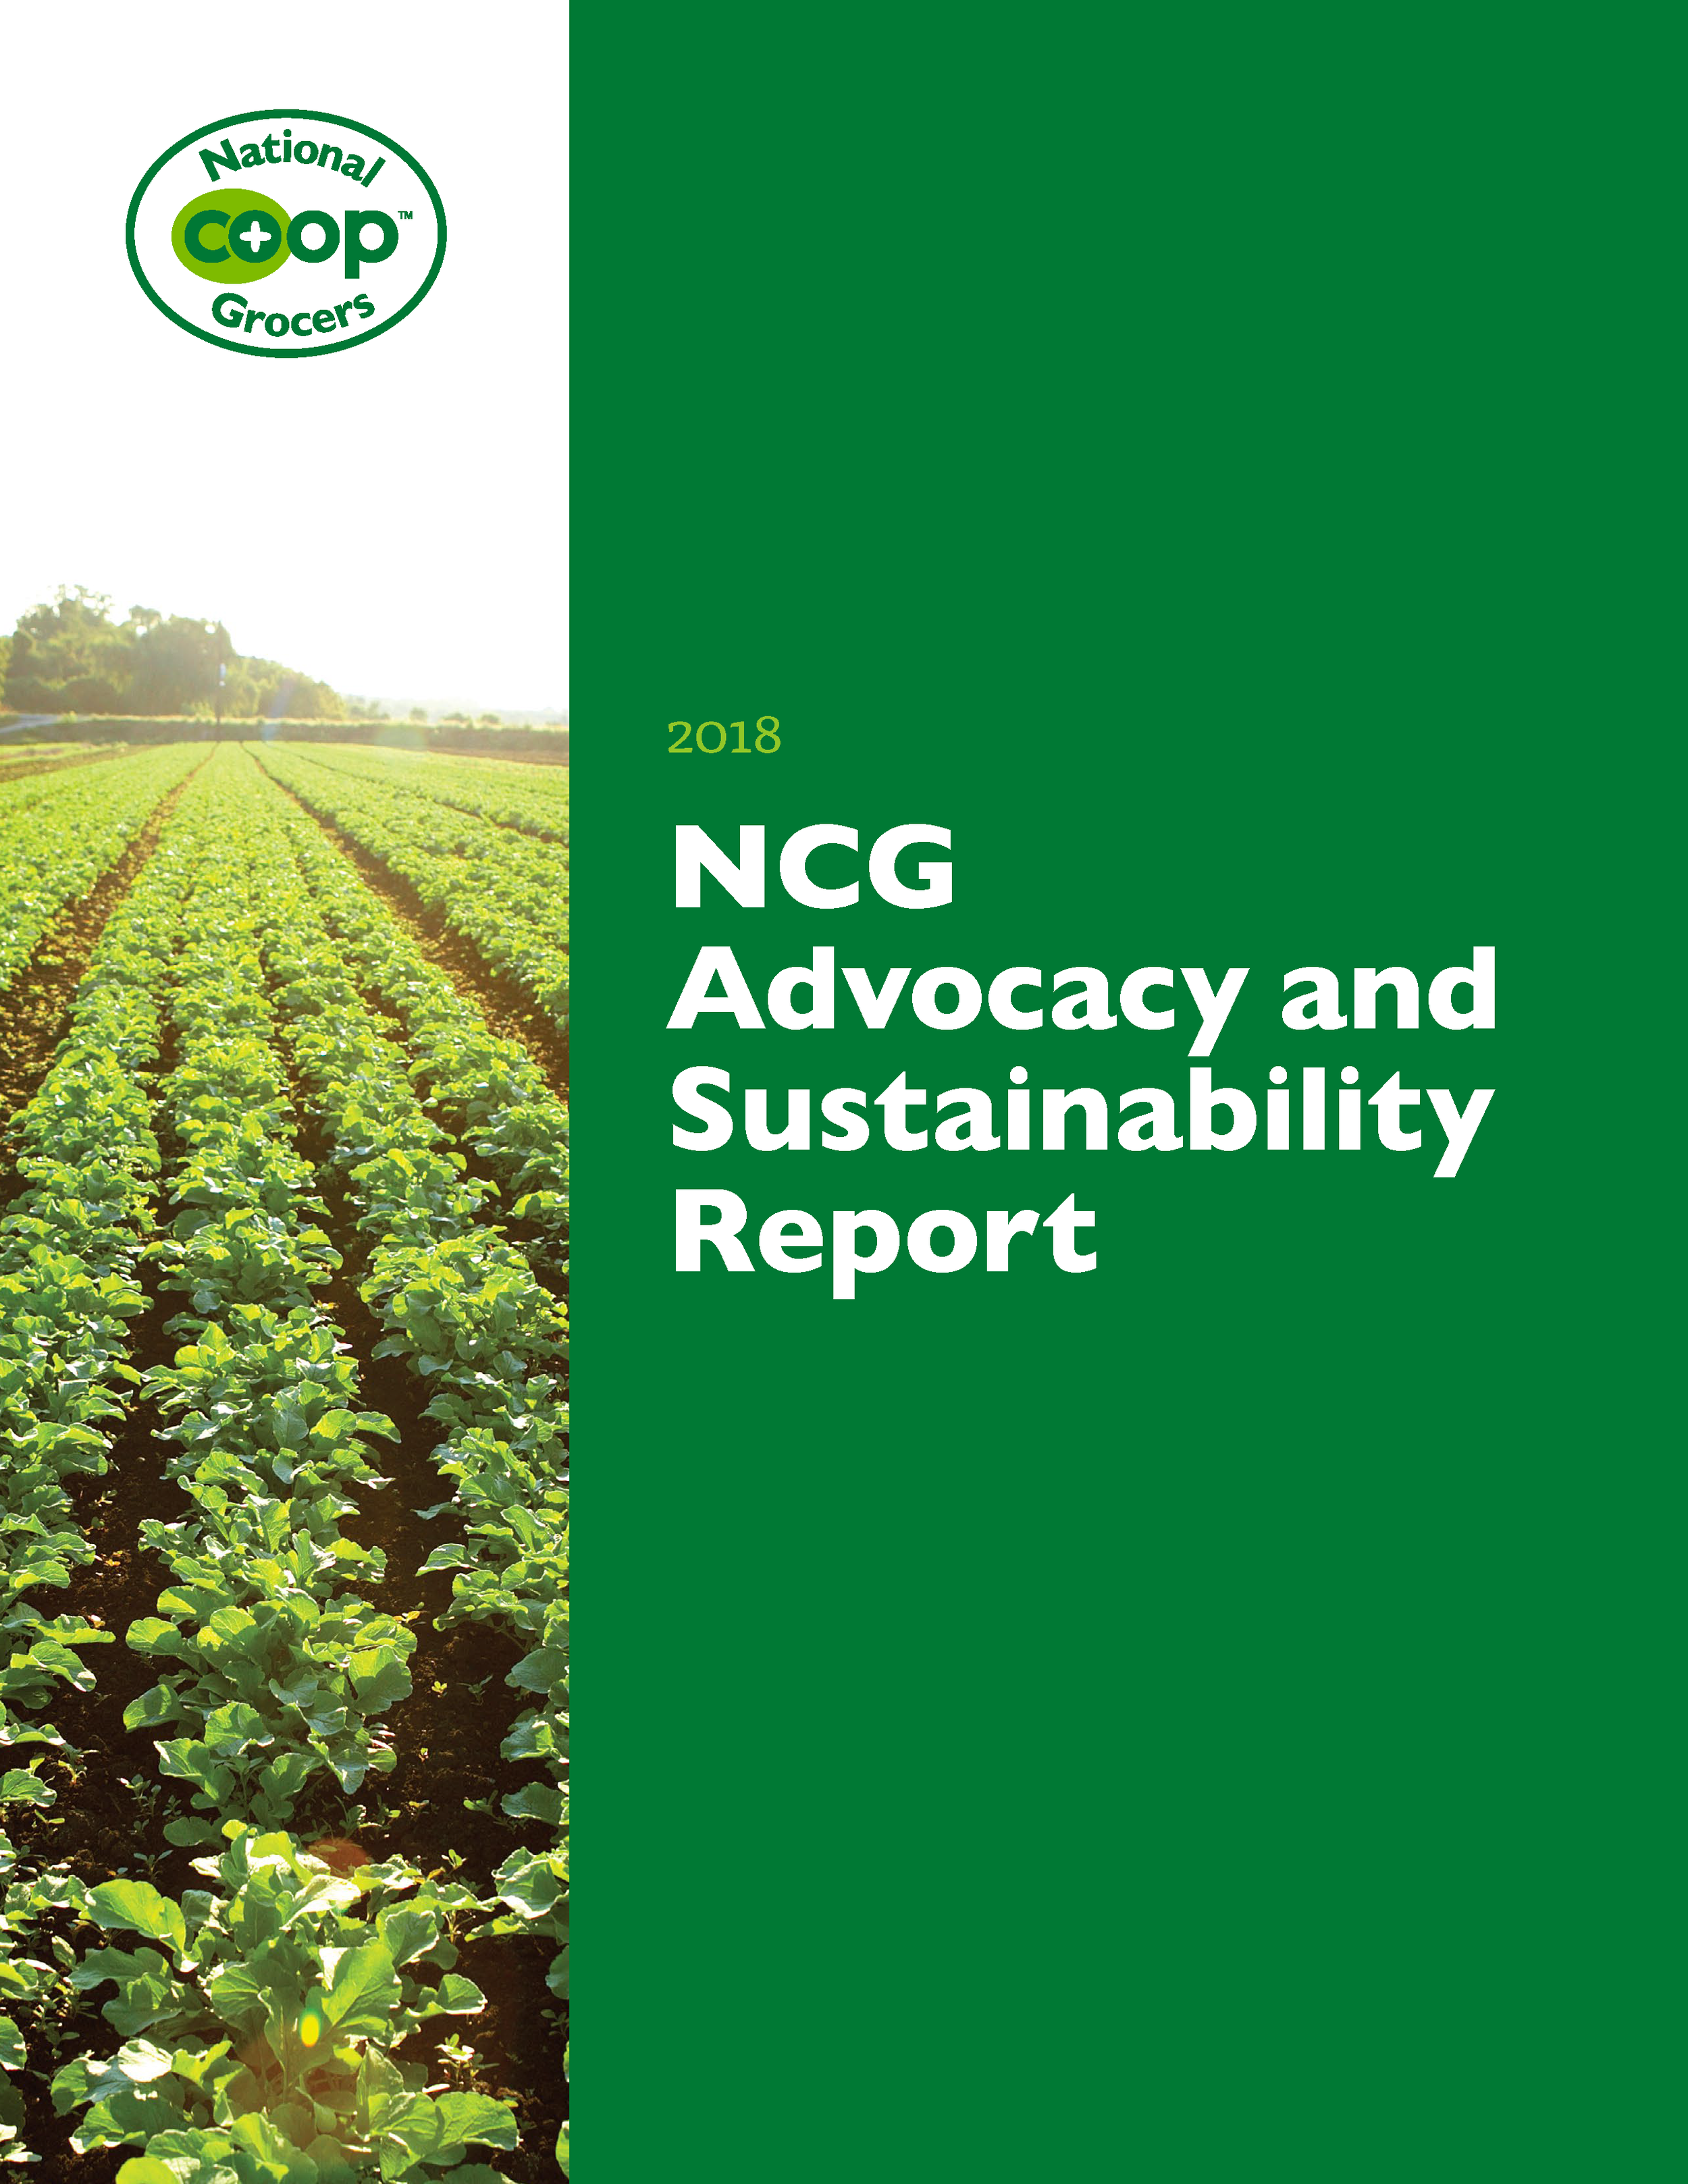 Pages from NCG_Advocacy_and_Sustainability_Report_2018.png